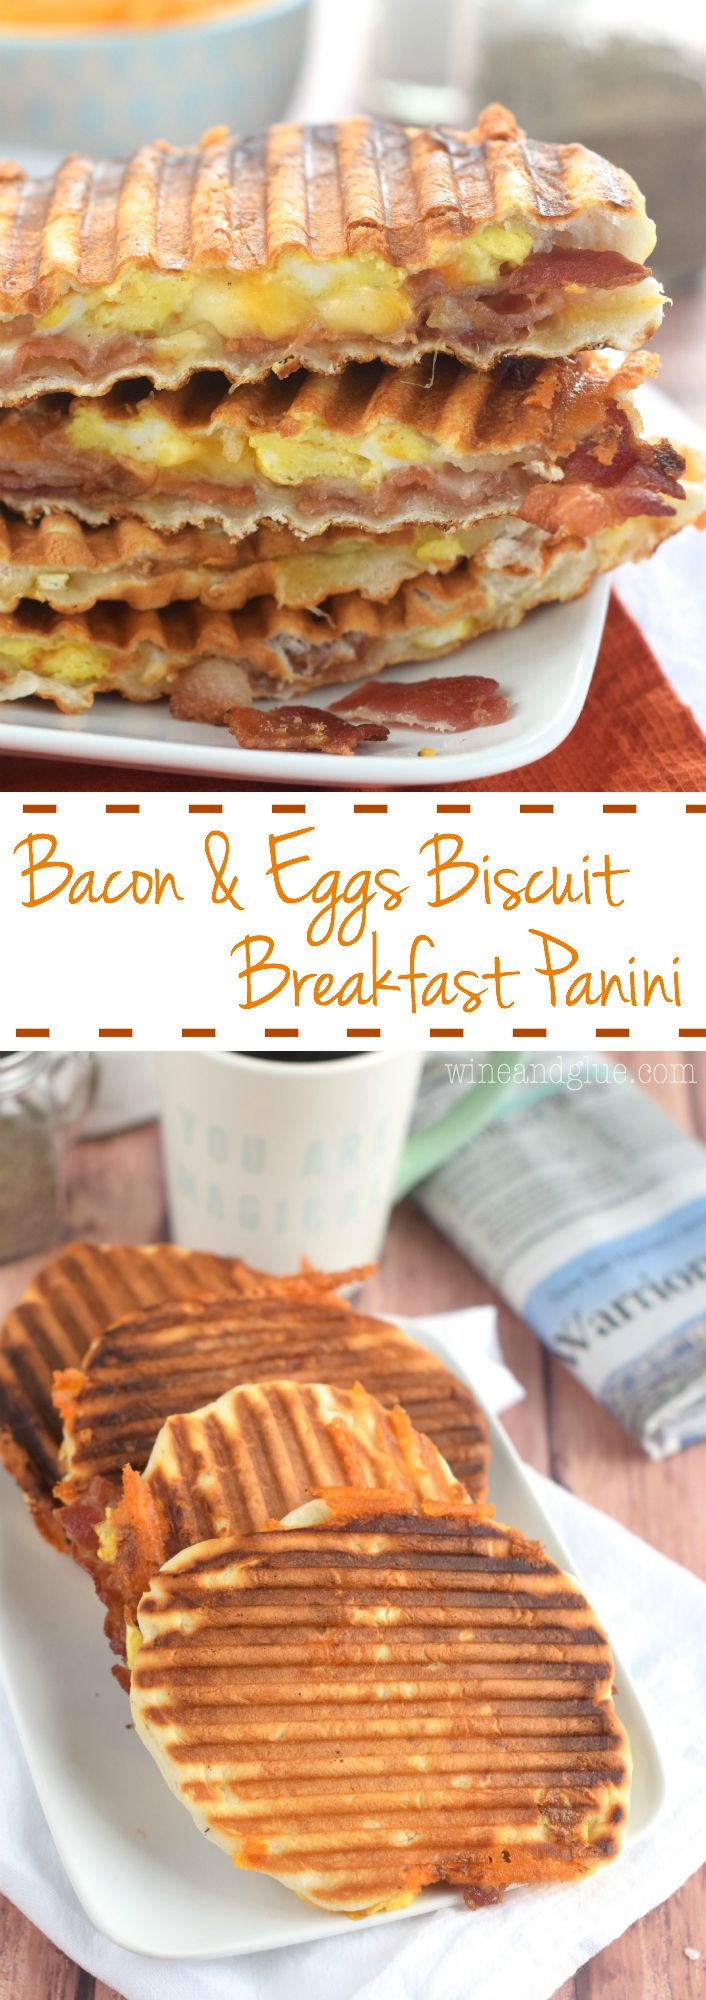 This Bacon and Eggs Biscuit Breakfast Panini is FOUR ingredients and and all but the last two steps can be done ahead of time making it a fast breakfast!